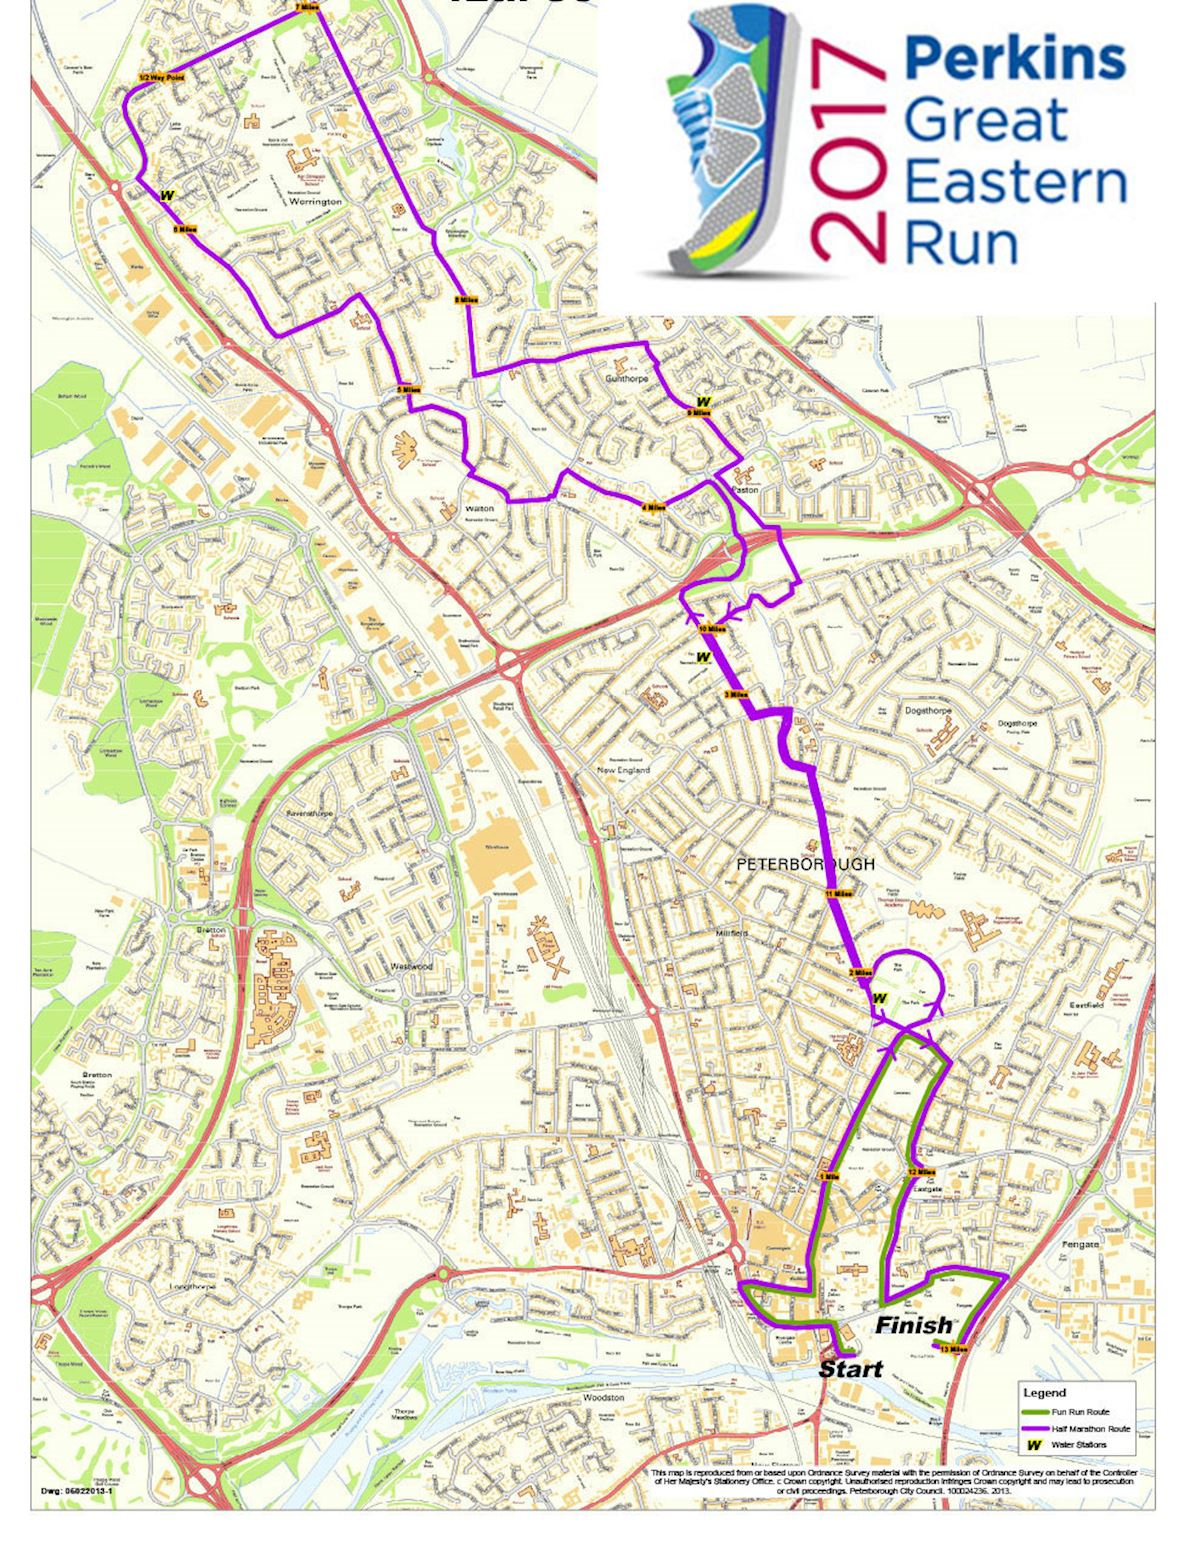 Perkins Great Eastern Run Route Map